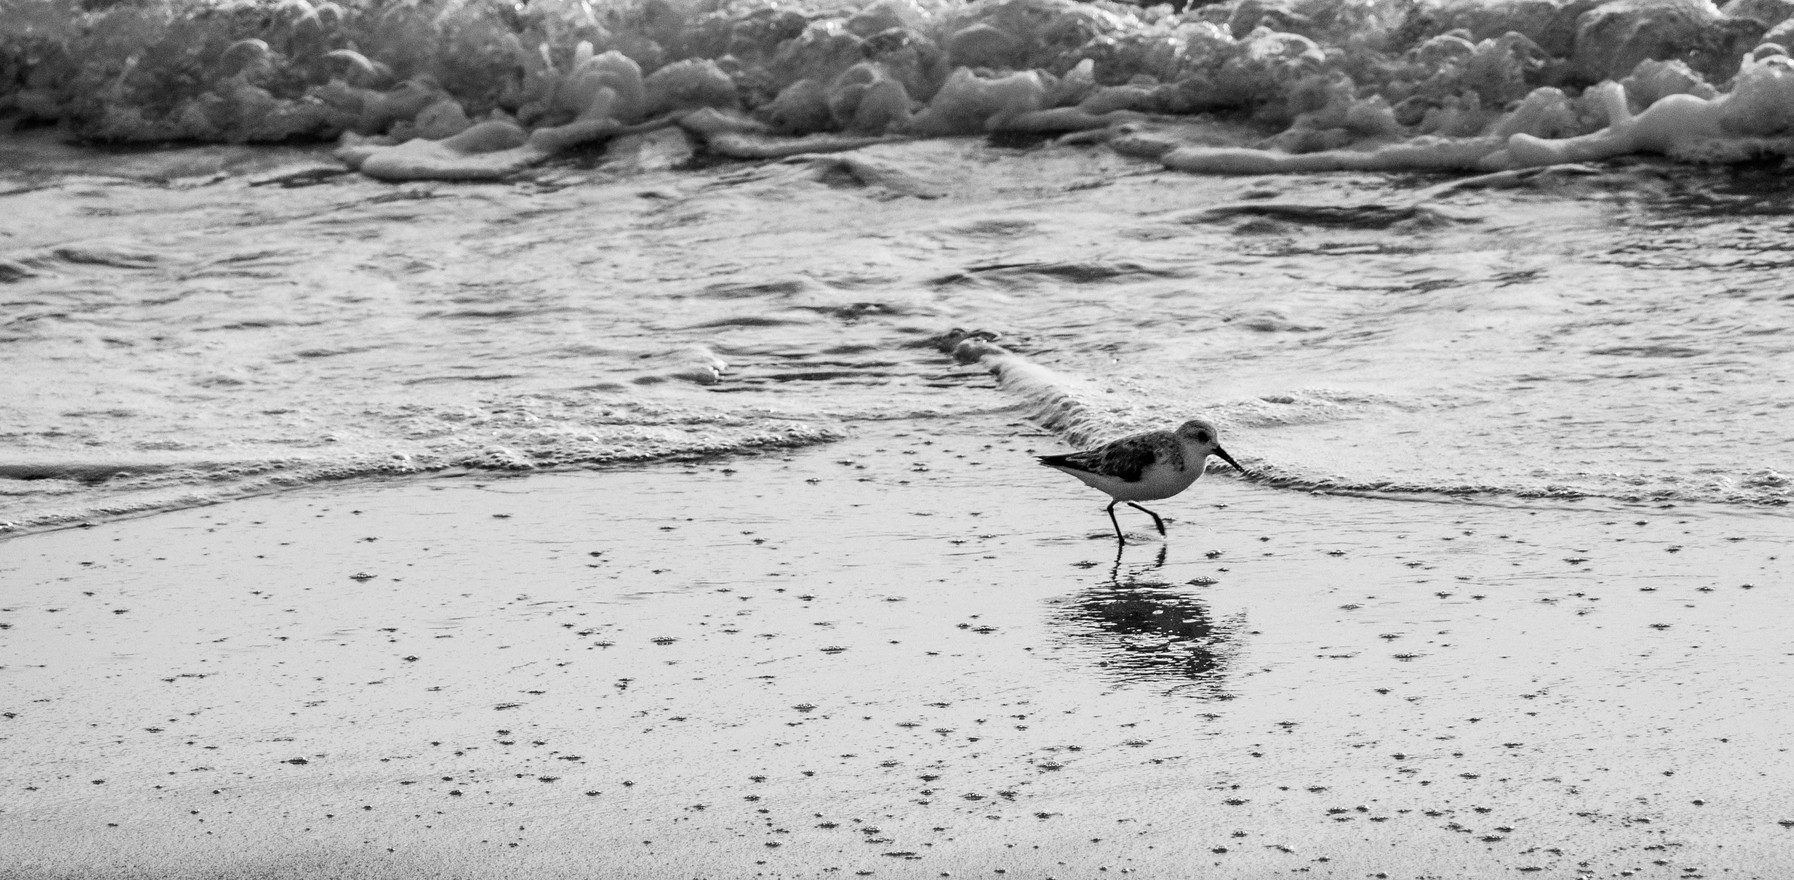 BW Sandpiper on Beach at Sunrise